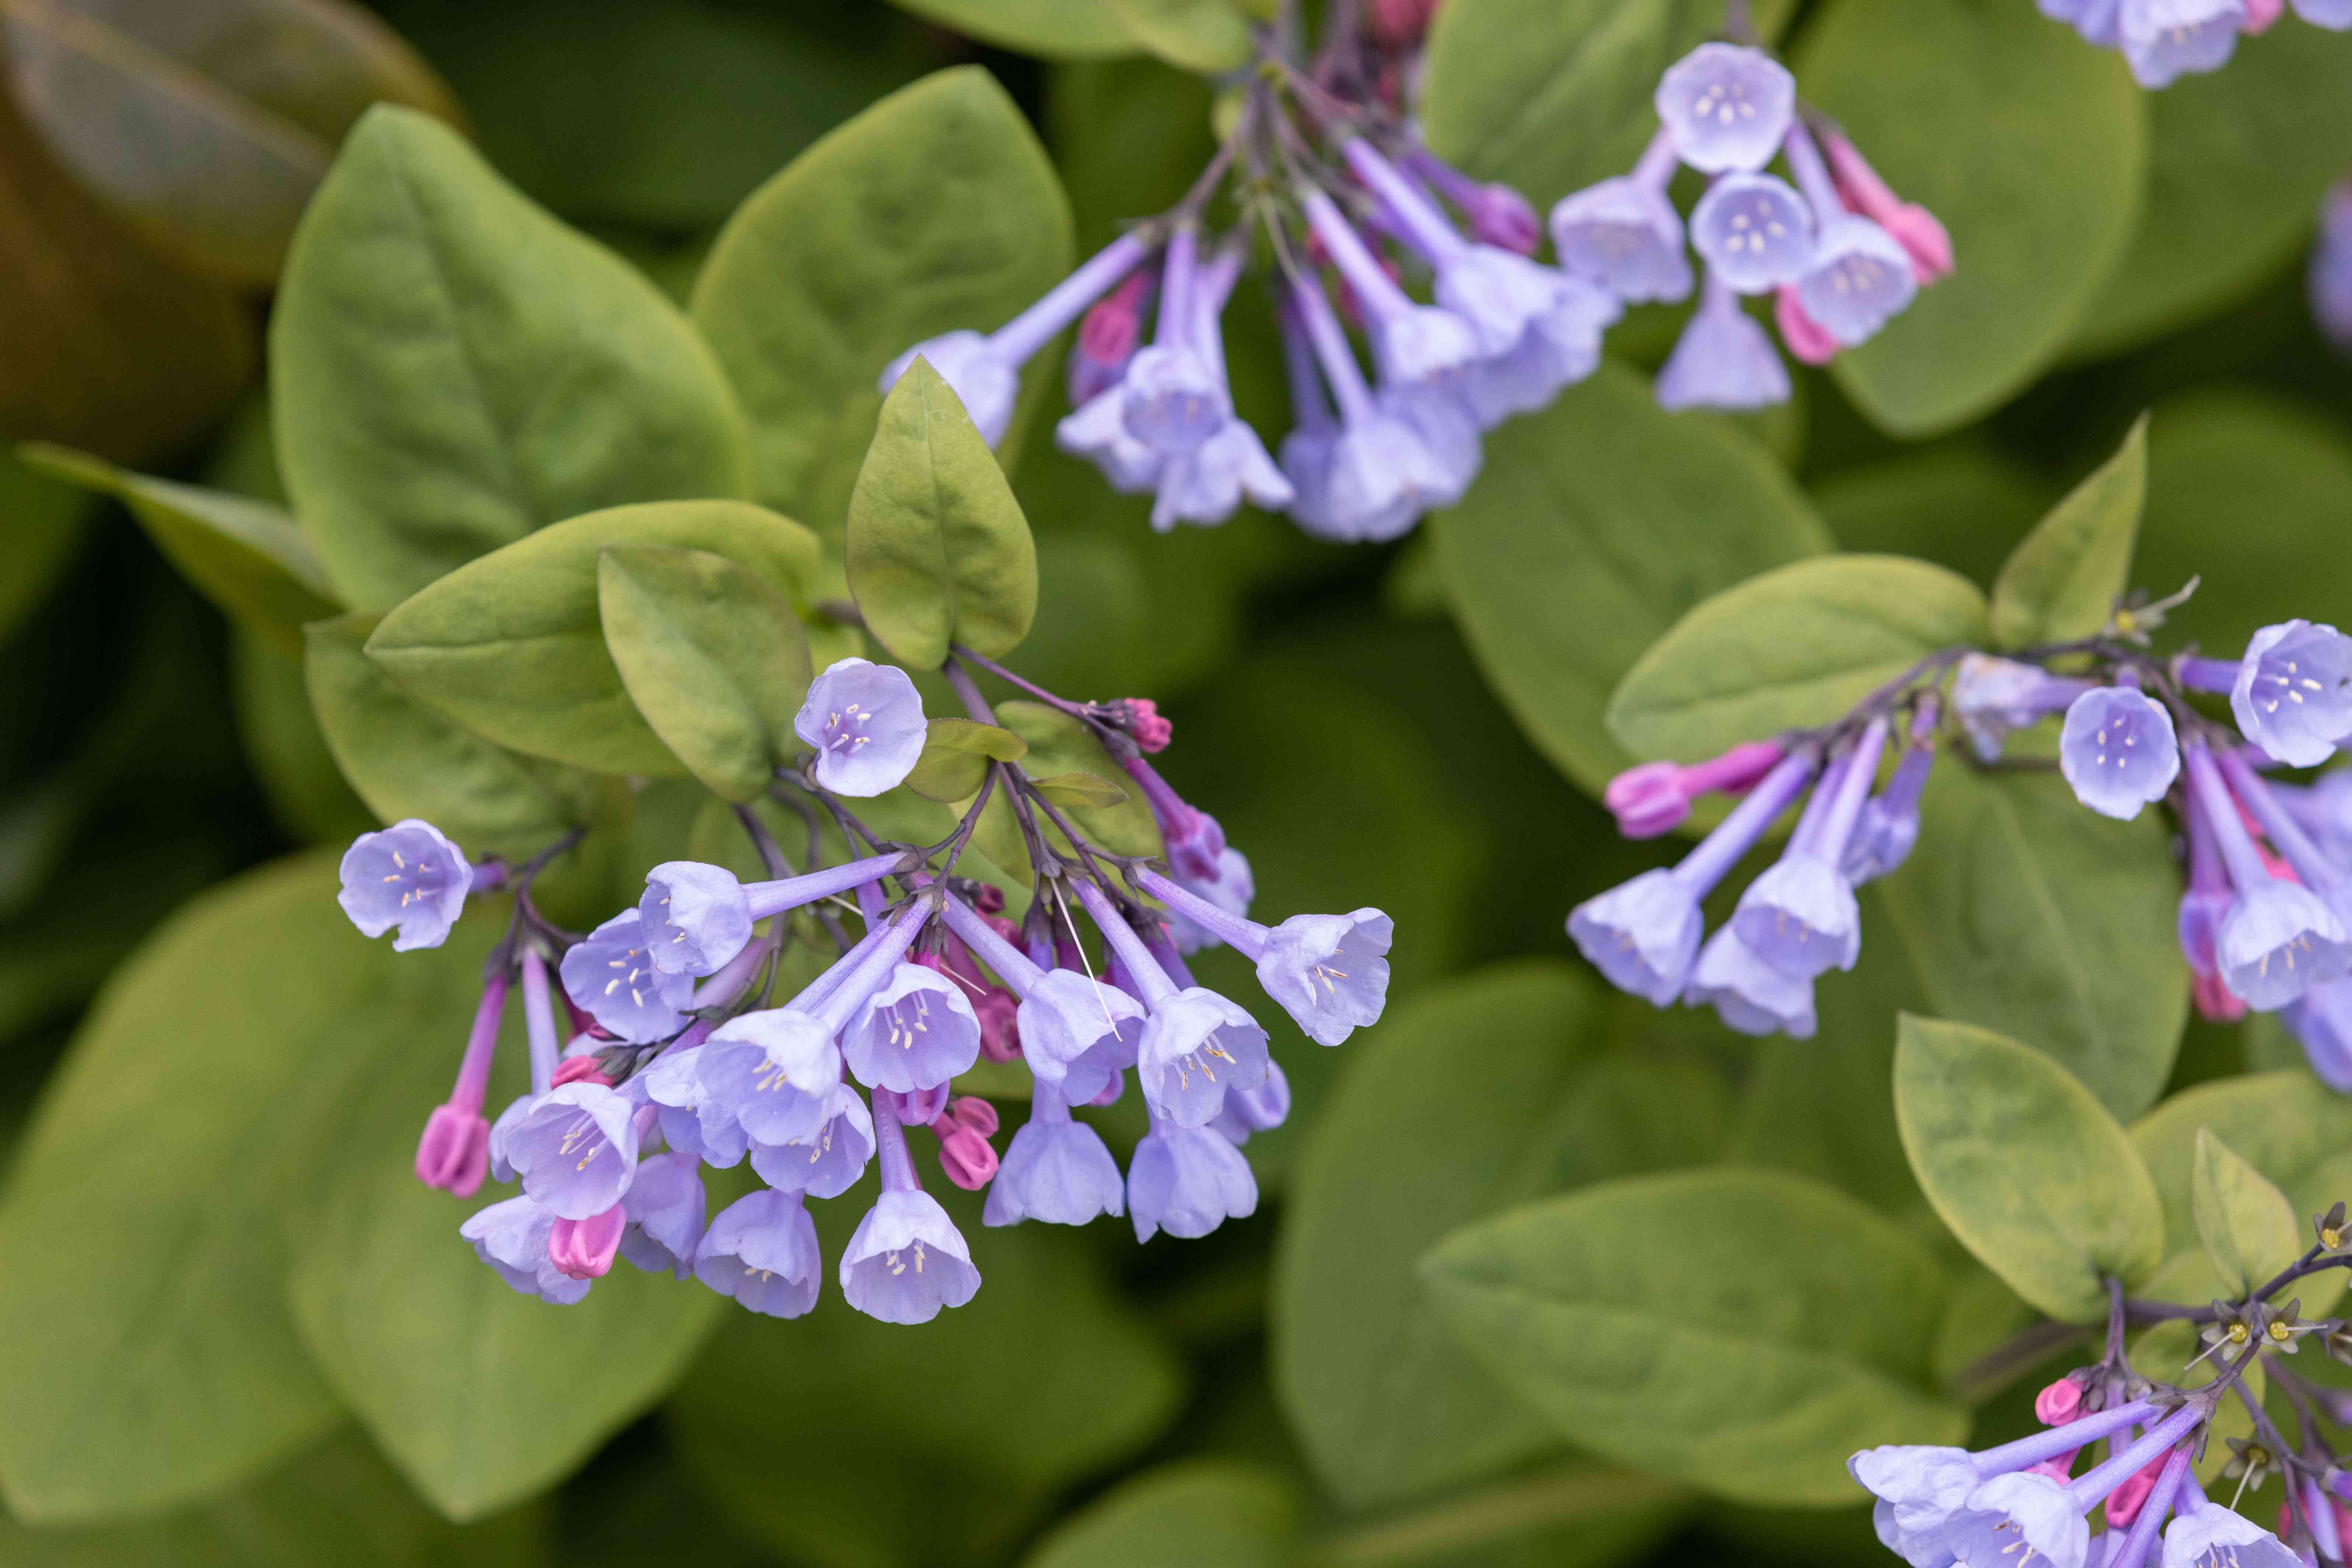 Virginia bluebell flowers with light lavender-colored trumpet-shaped petals in garden closeup